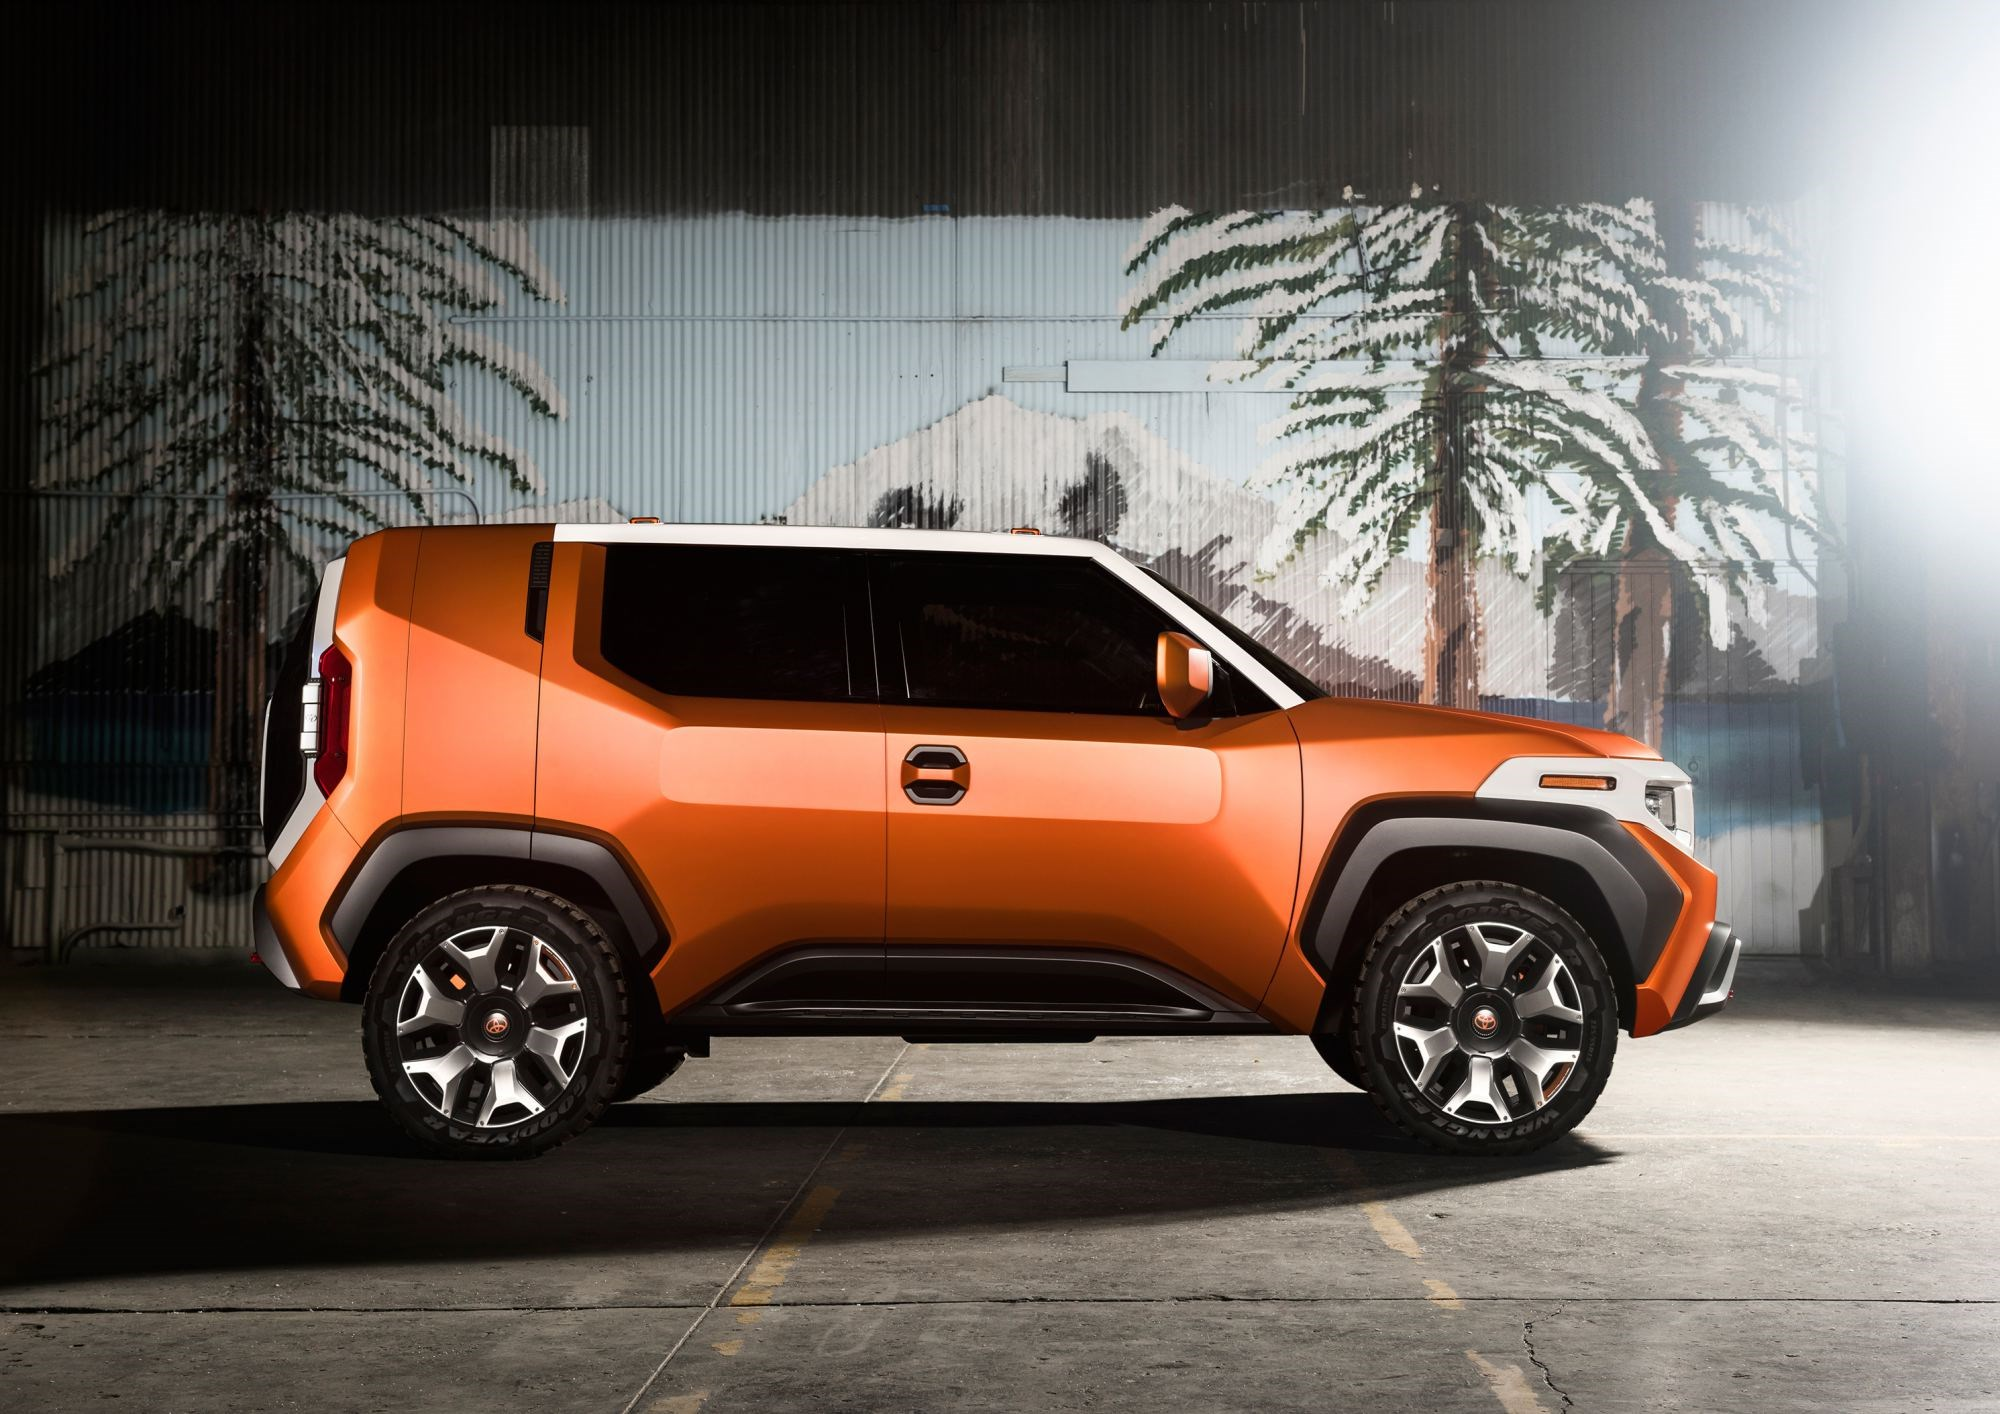 Toyota's FT-4X Concept, Gadget-Obsessed Outdoorsman Thumbnail